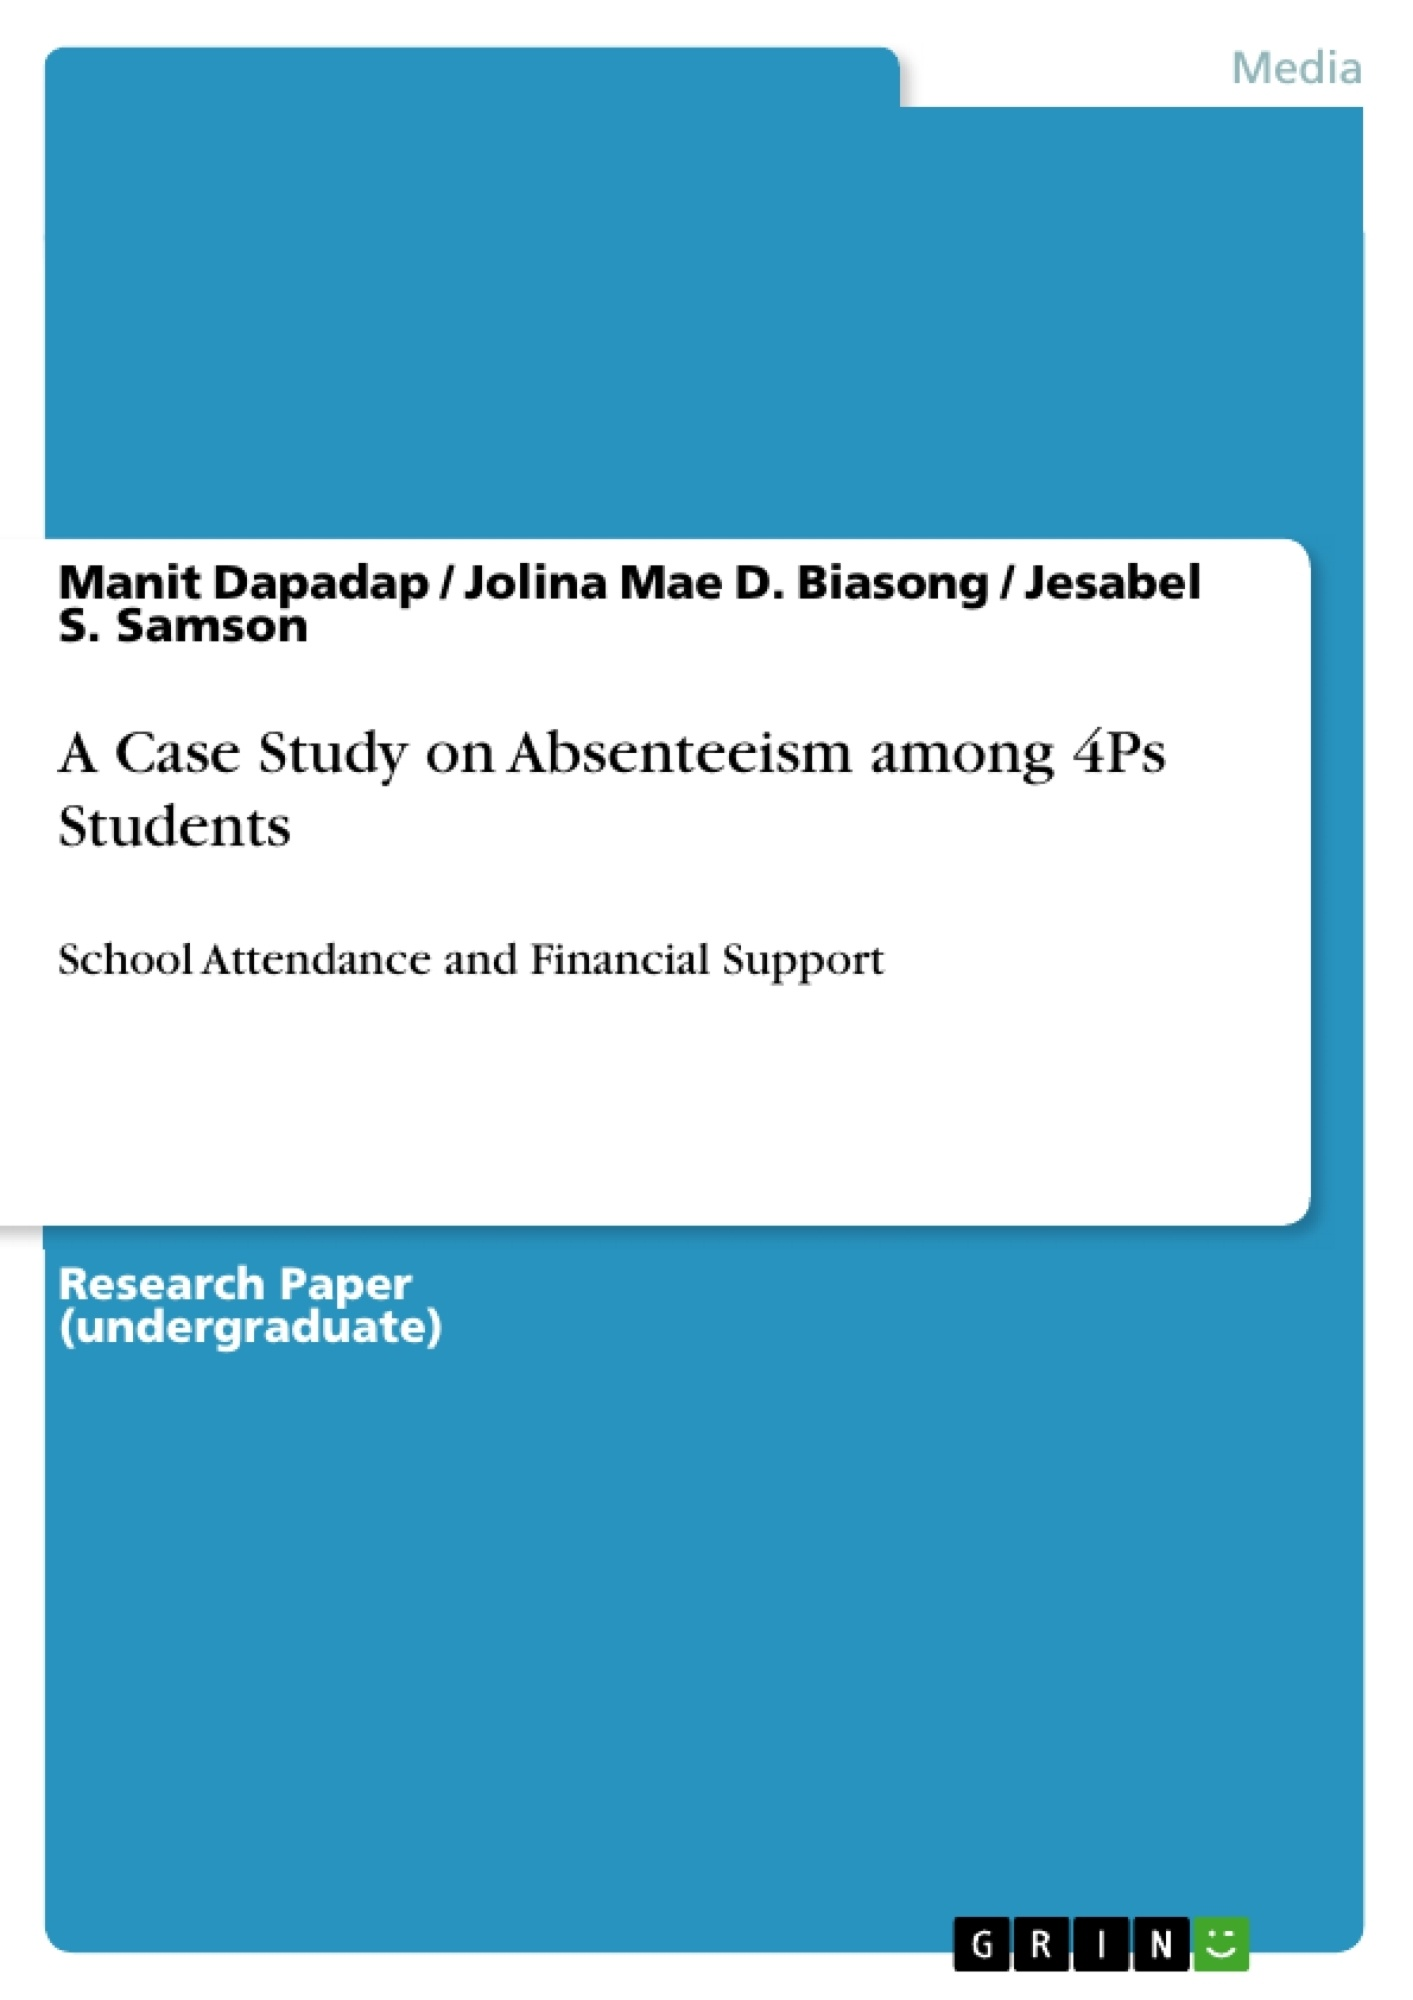 Title: A Case Study on Absenteeism among 4Ps Students